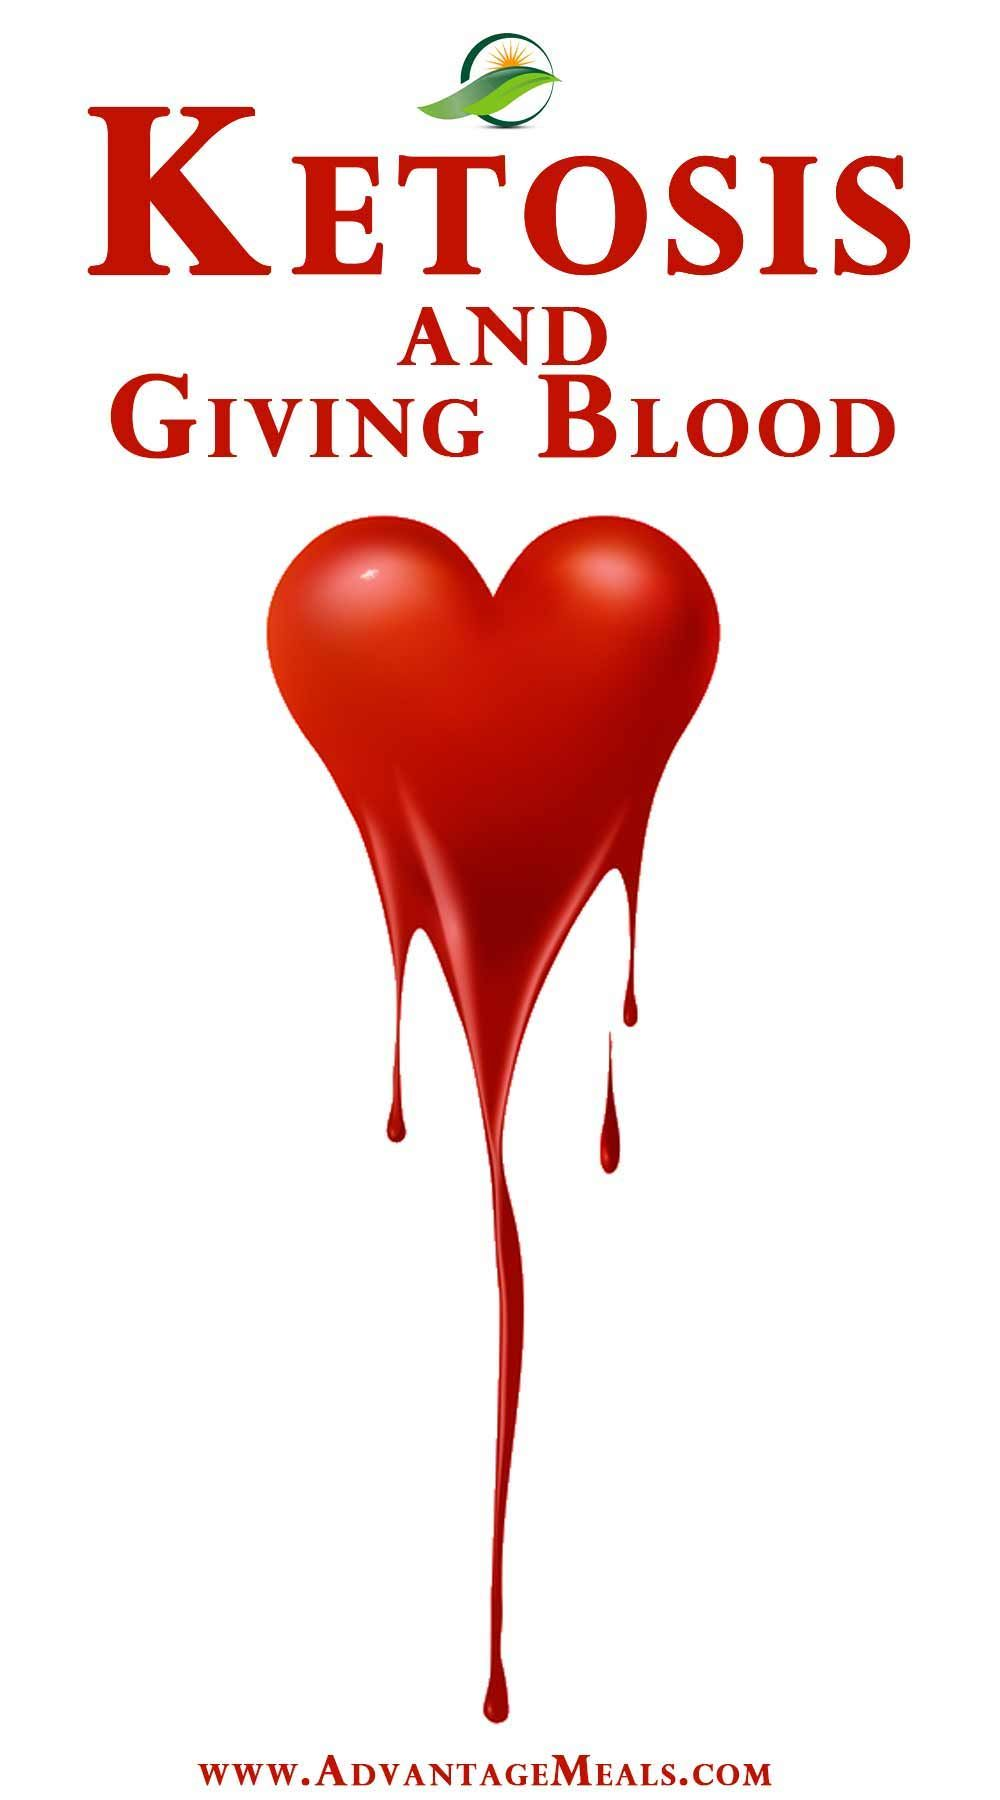 keto diet and donating blood